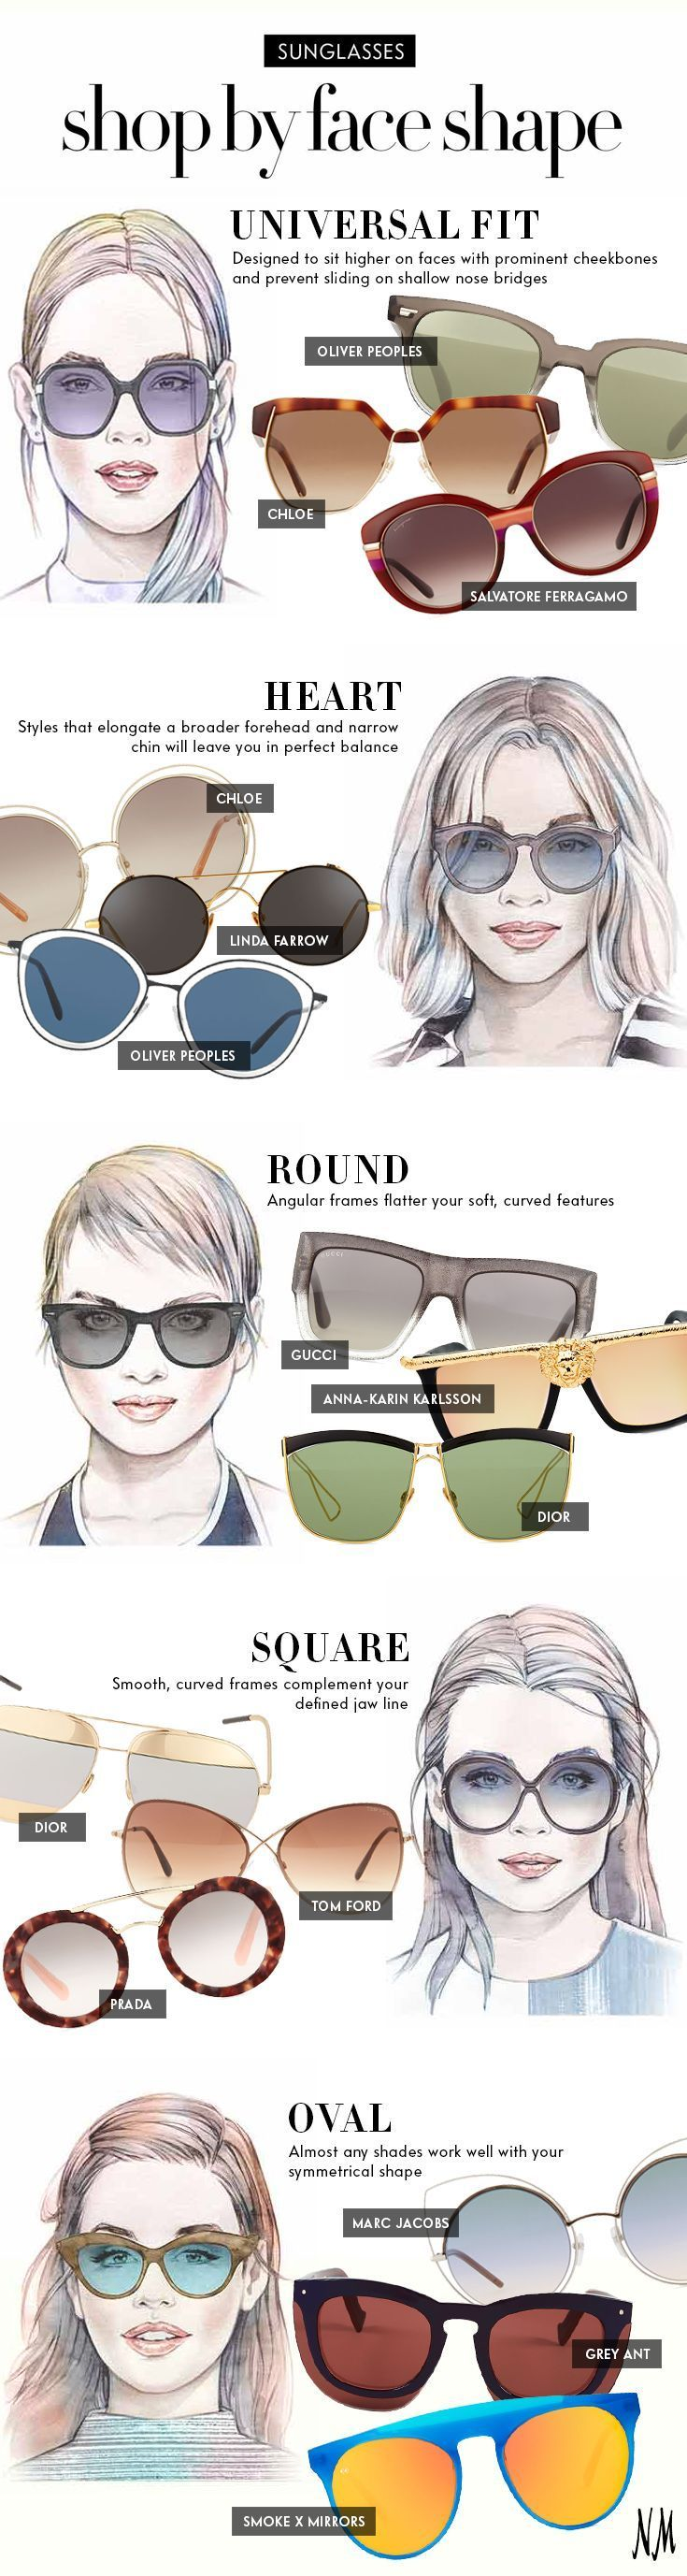 Oliver Peoples, Dior, Tom Ford,  Prada for your face shape